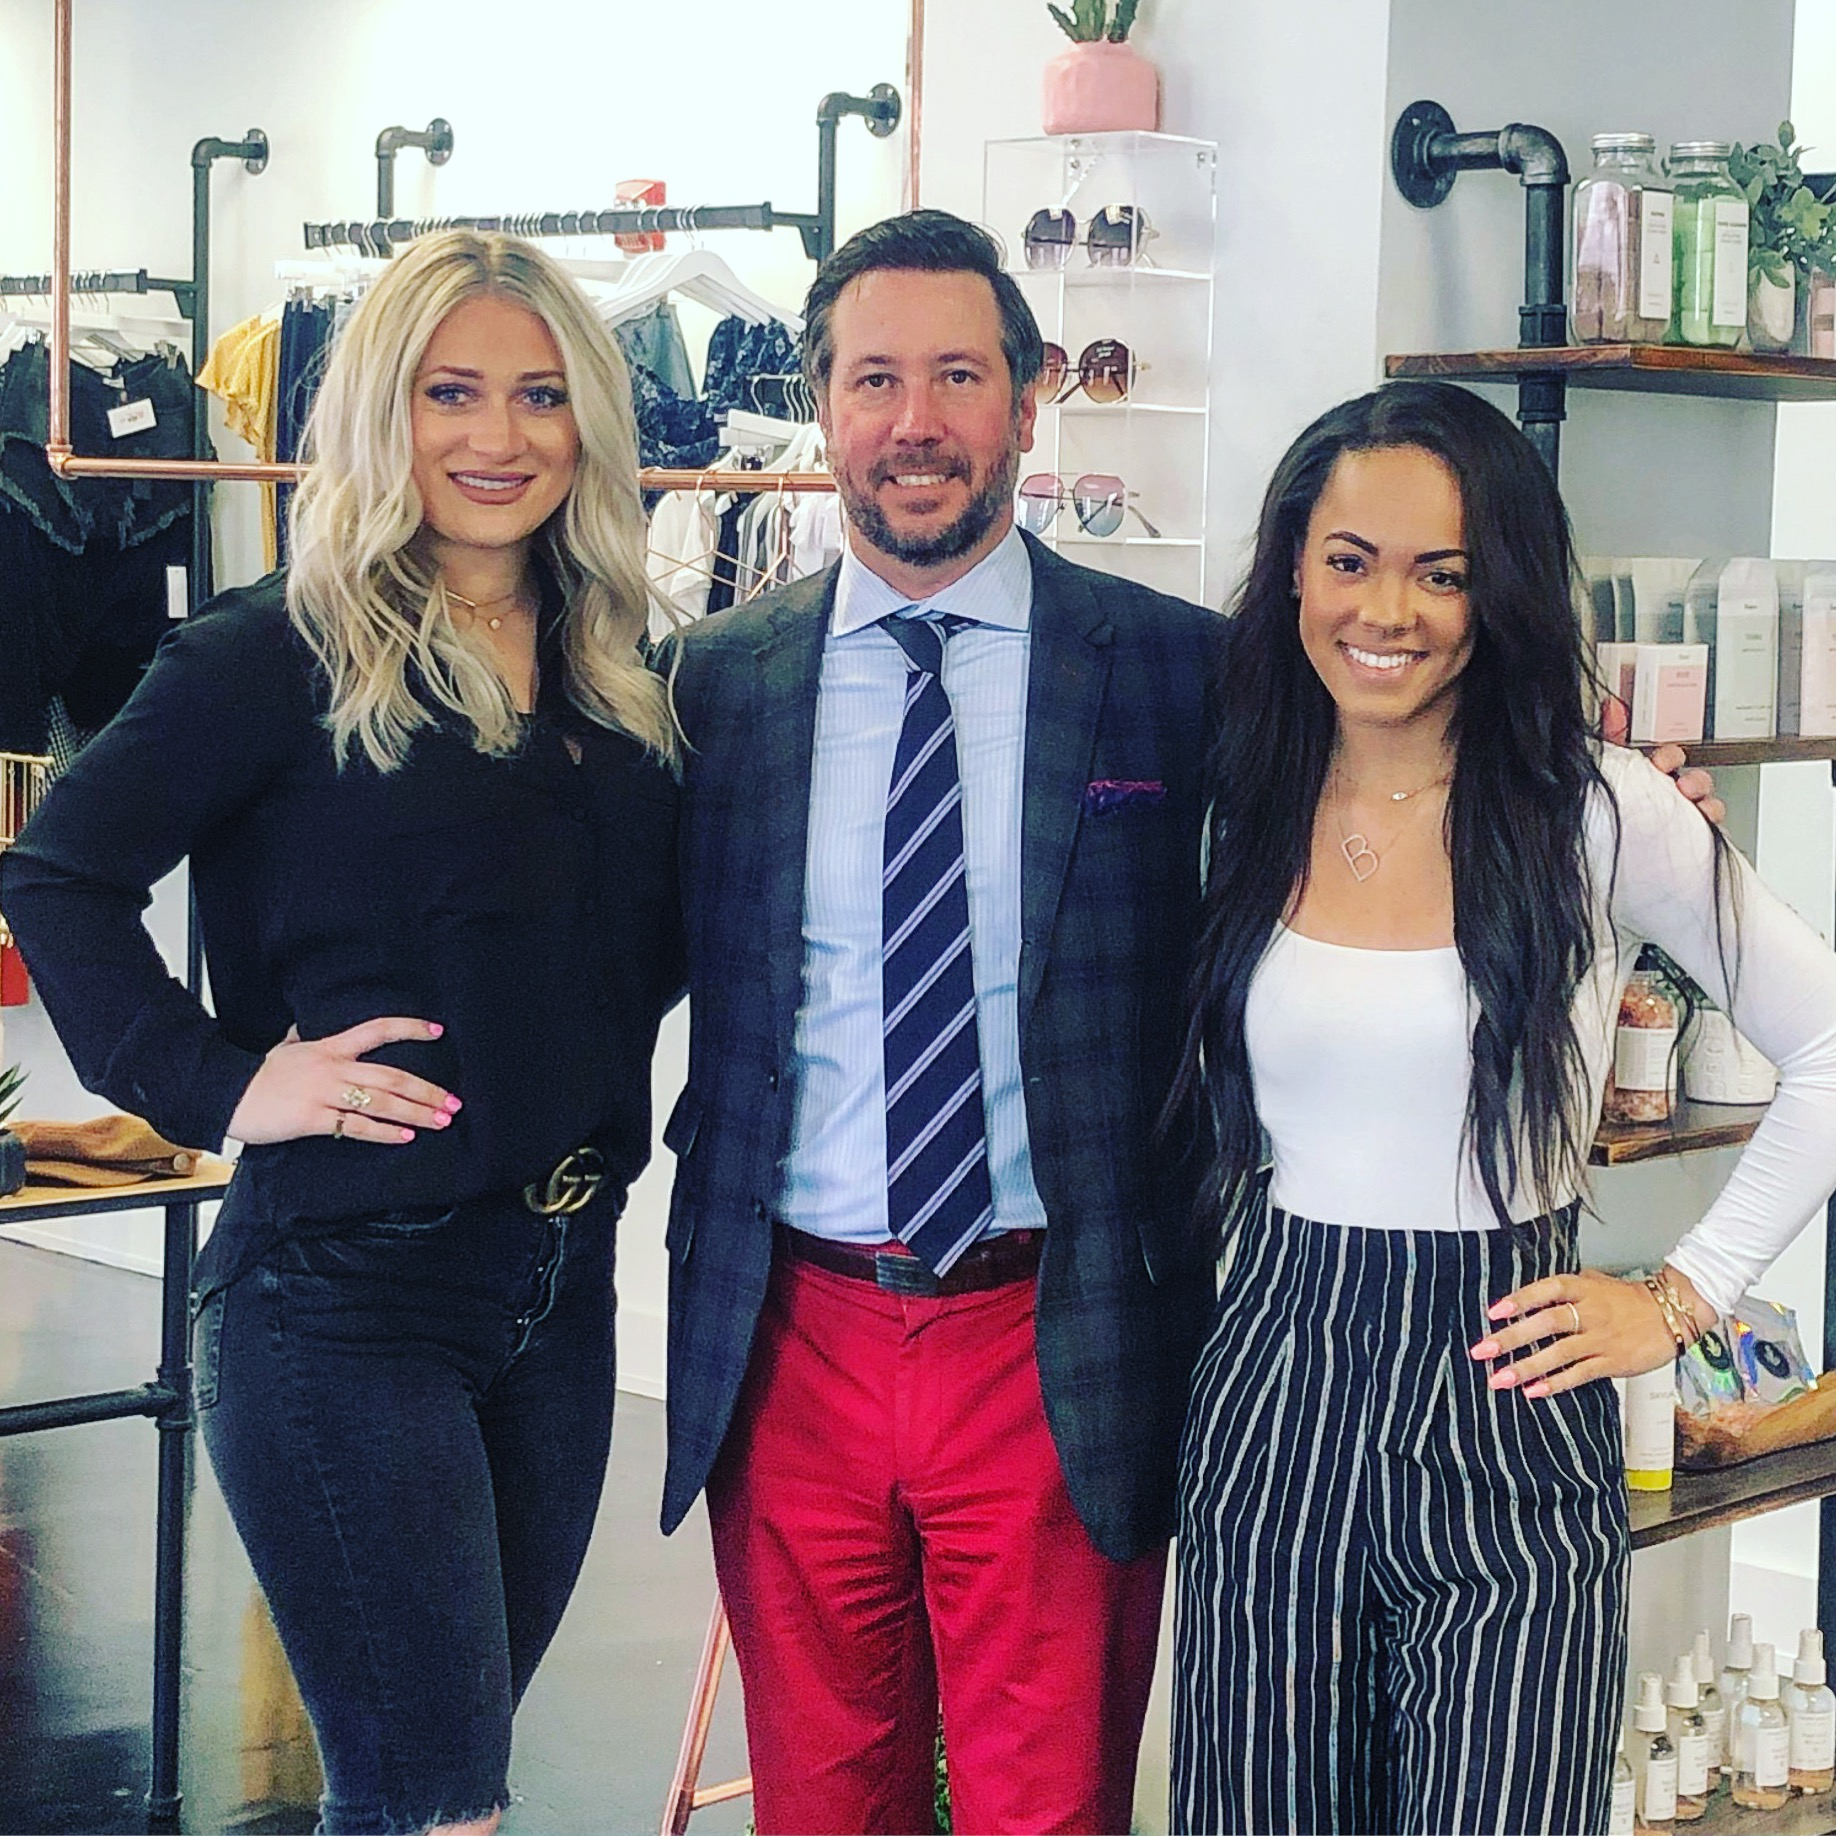 Taylor Salandra and Brianna Volatile, founders and owners of Four One Oh and Brunette & Co with Craig Martin, founder of The QG